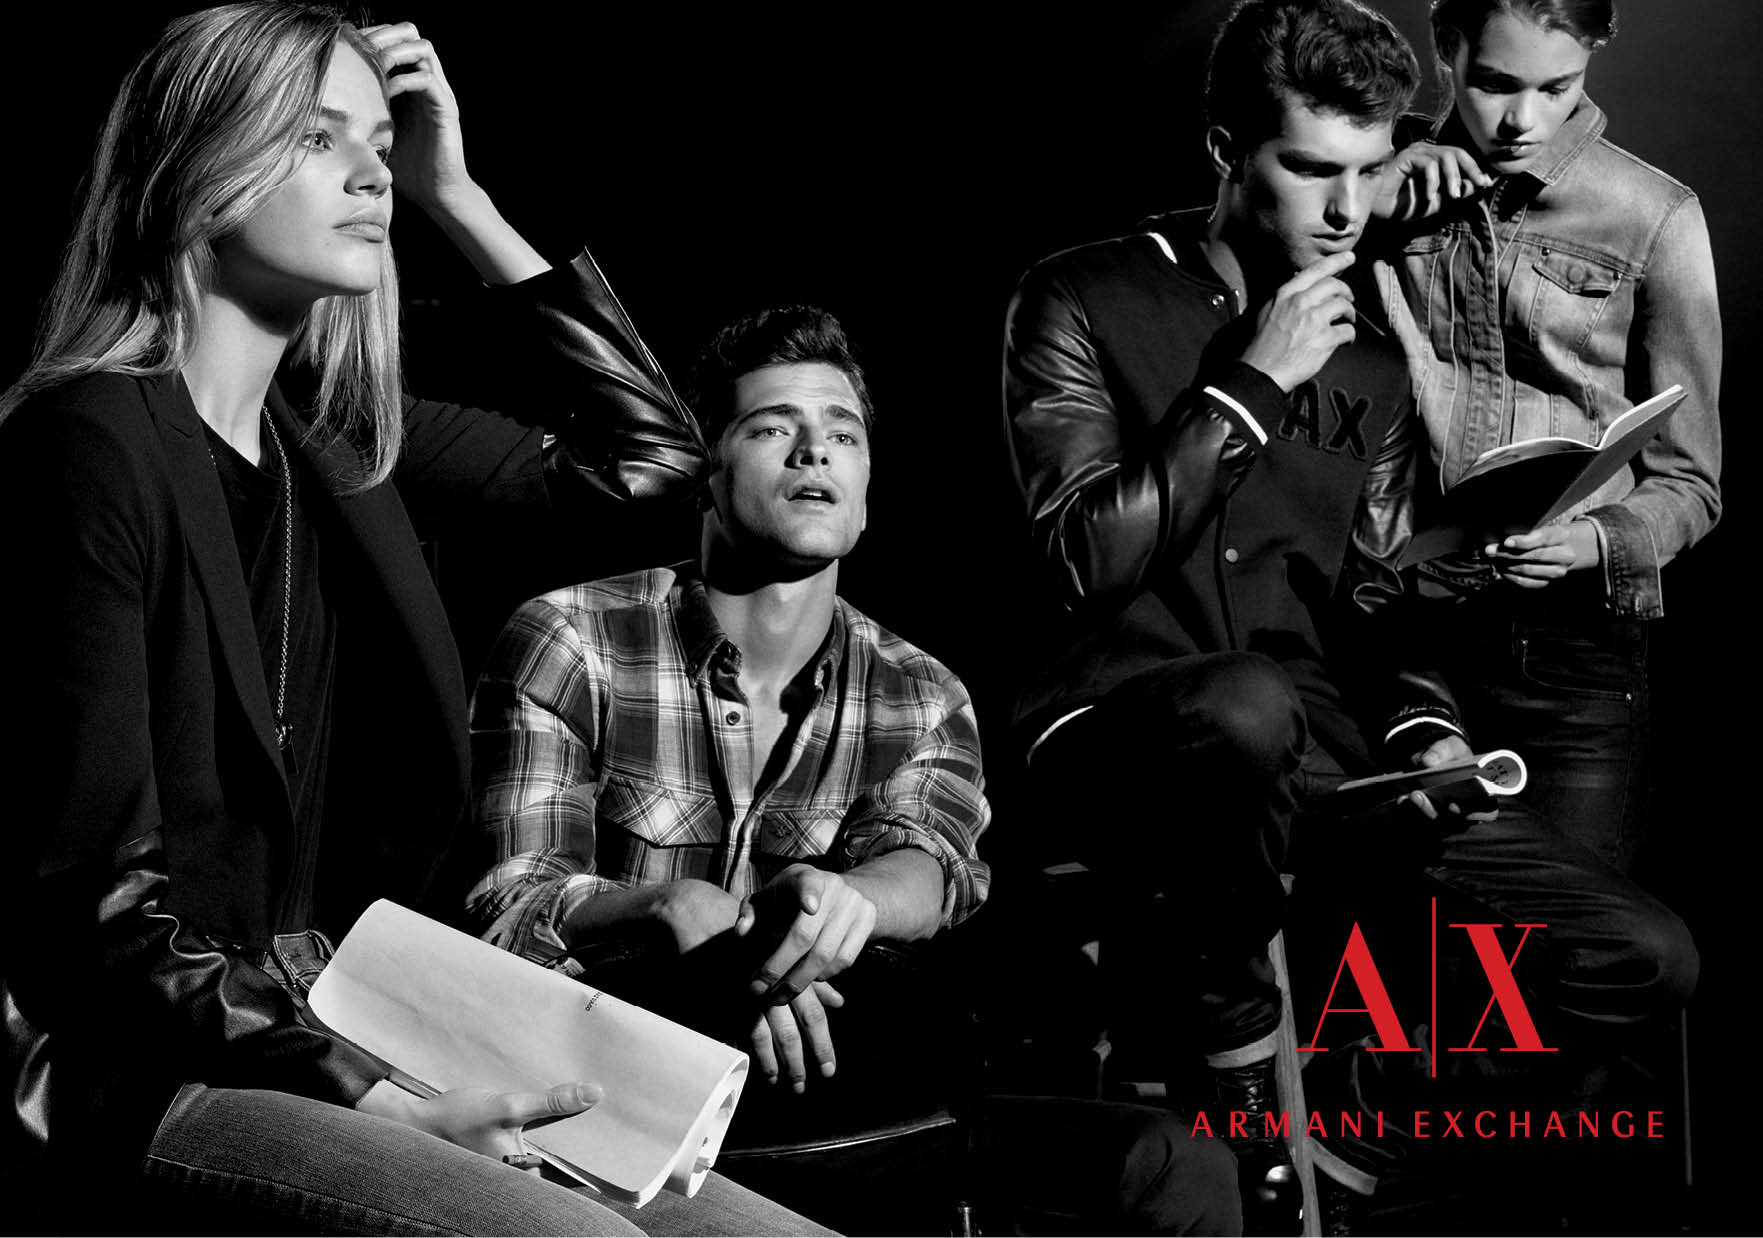 Armani Exchange Fall/ Holiday '13 Campaign  Developed font/ swatch/ logo treatments and cropping guidelines for all seasonal advertising pieces